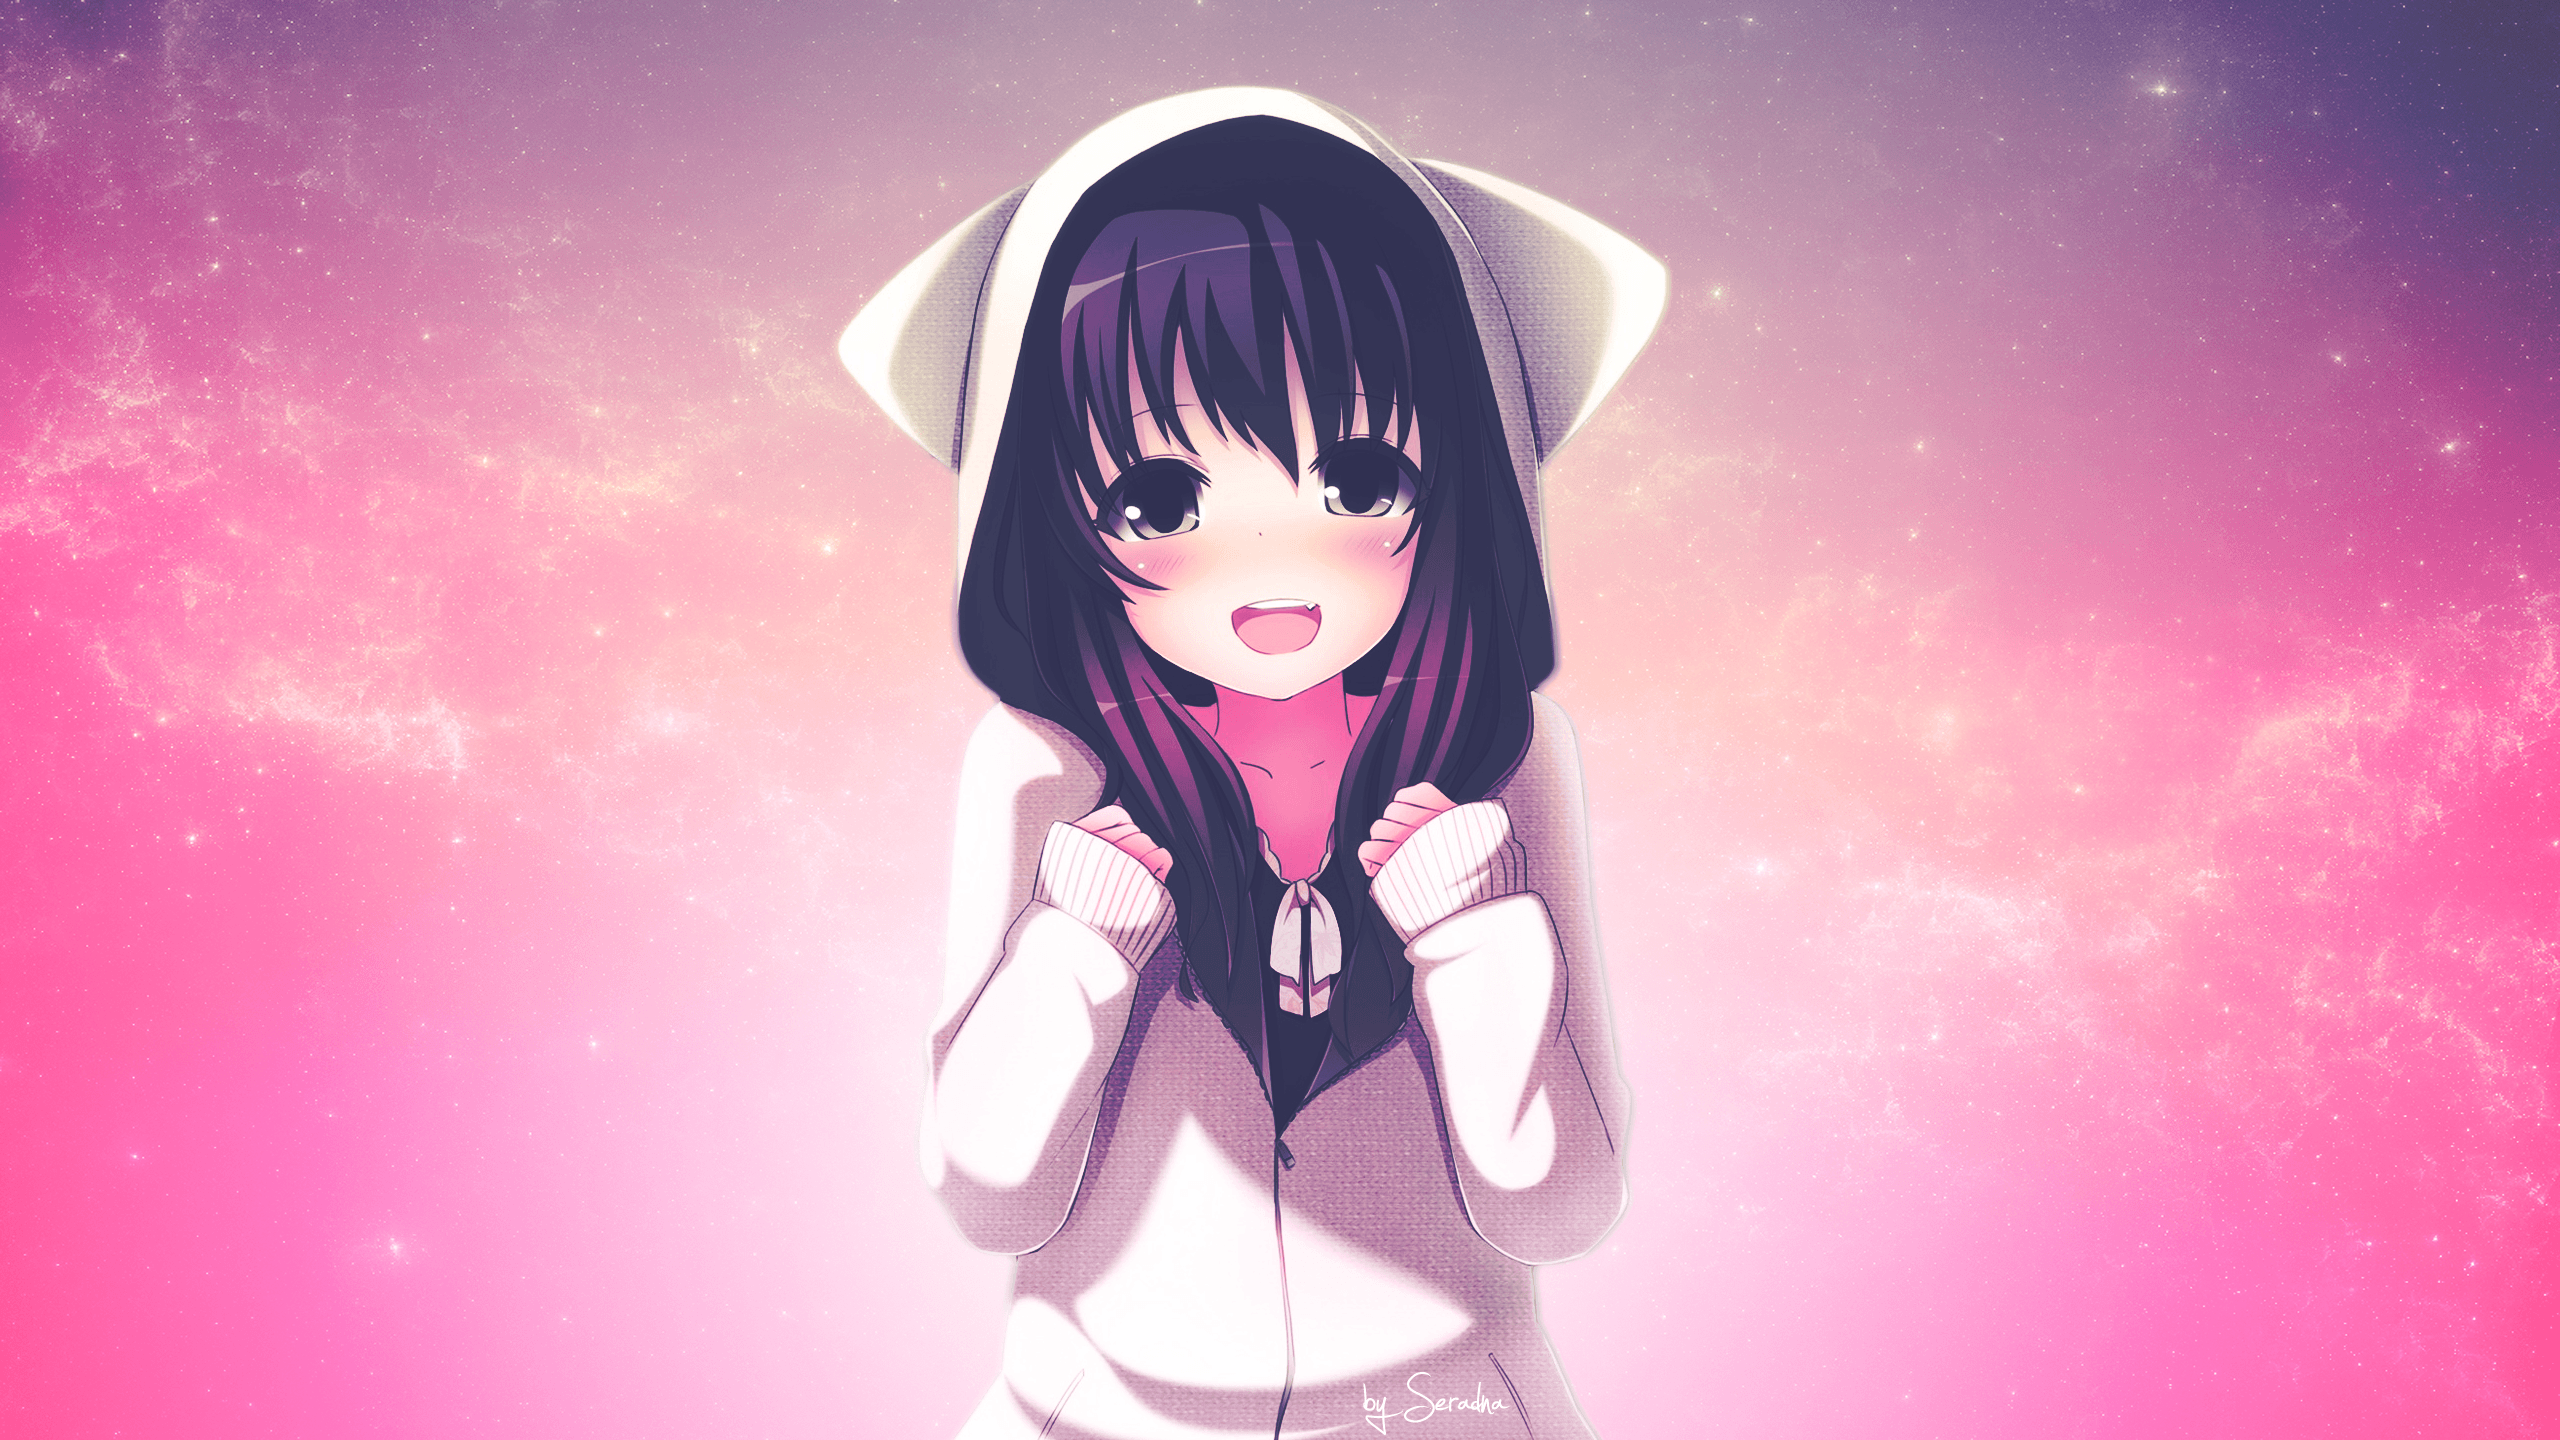 Cute Girl Anime Wallpapers   Wallpaper Cave